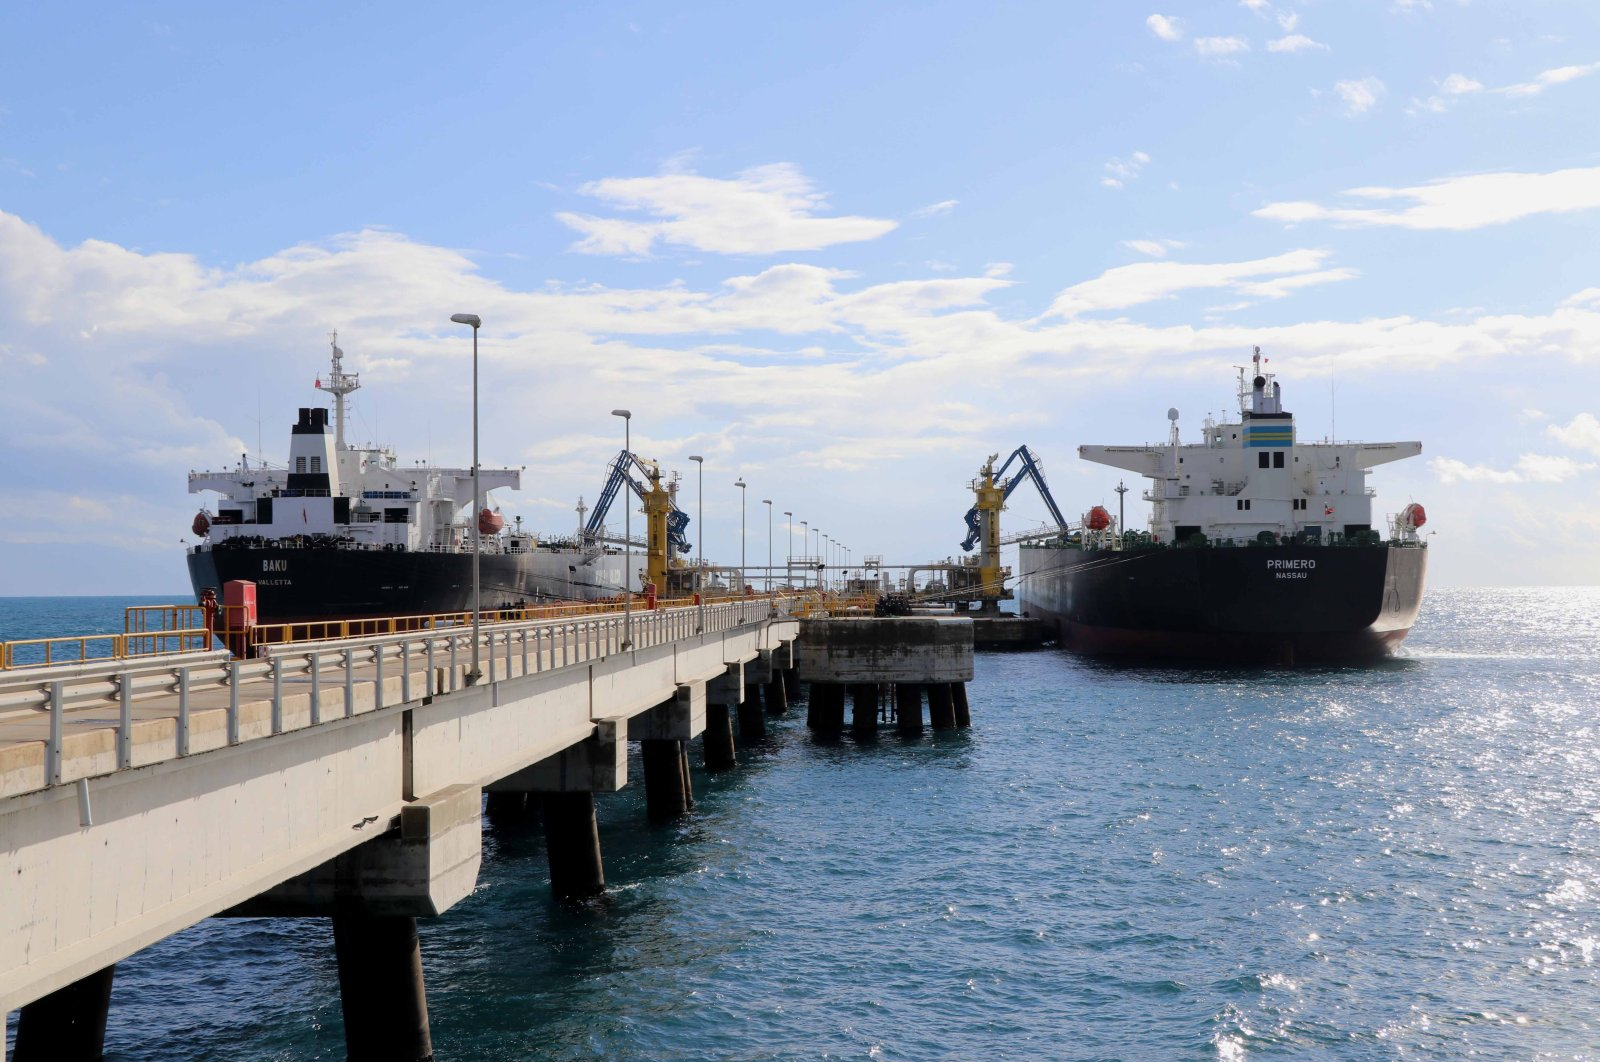 The BTC pipeline delivered 3.4 billion barrels of crude oil shipped from the marine terminal at Ceyhan in southern Turkey's Adana in 14 years. ( BOTAS Internatıonal via AA)